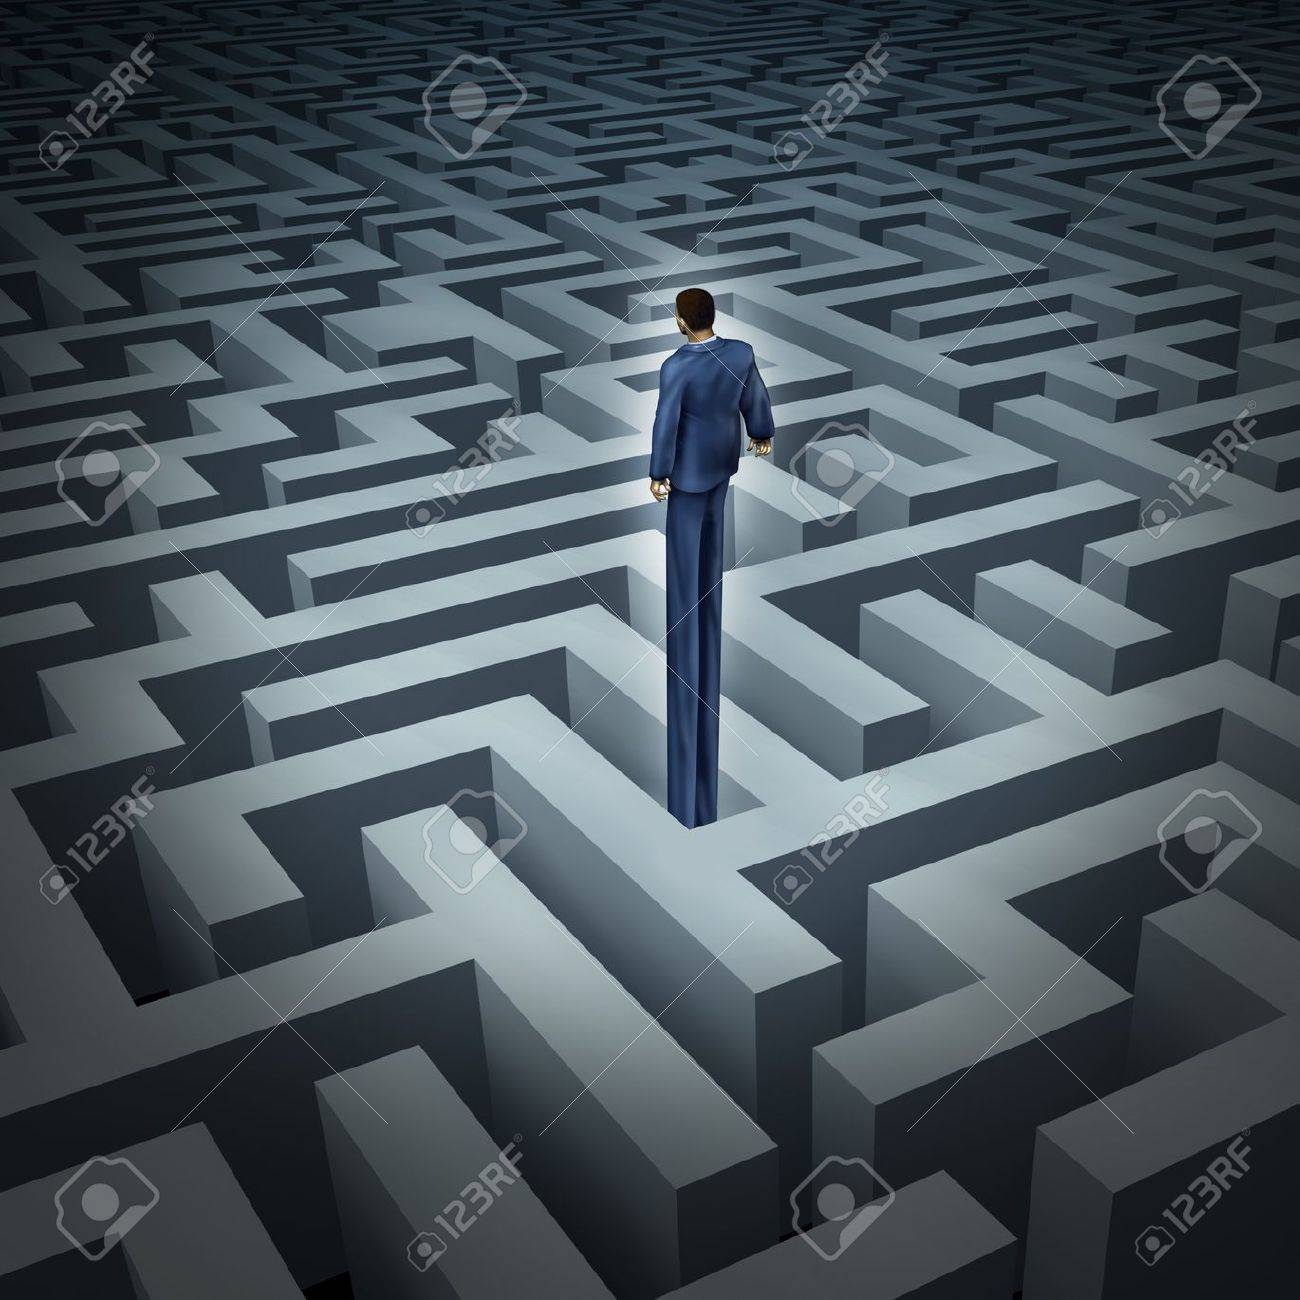 New leadership vision for finding solutions with a businessman who has grown long legs to see above through a complicated maze or labyrinth as a business concept of innovative thinking for financial success Stock Photo - 19703982